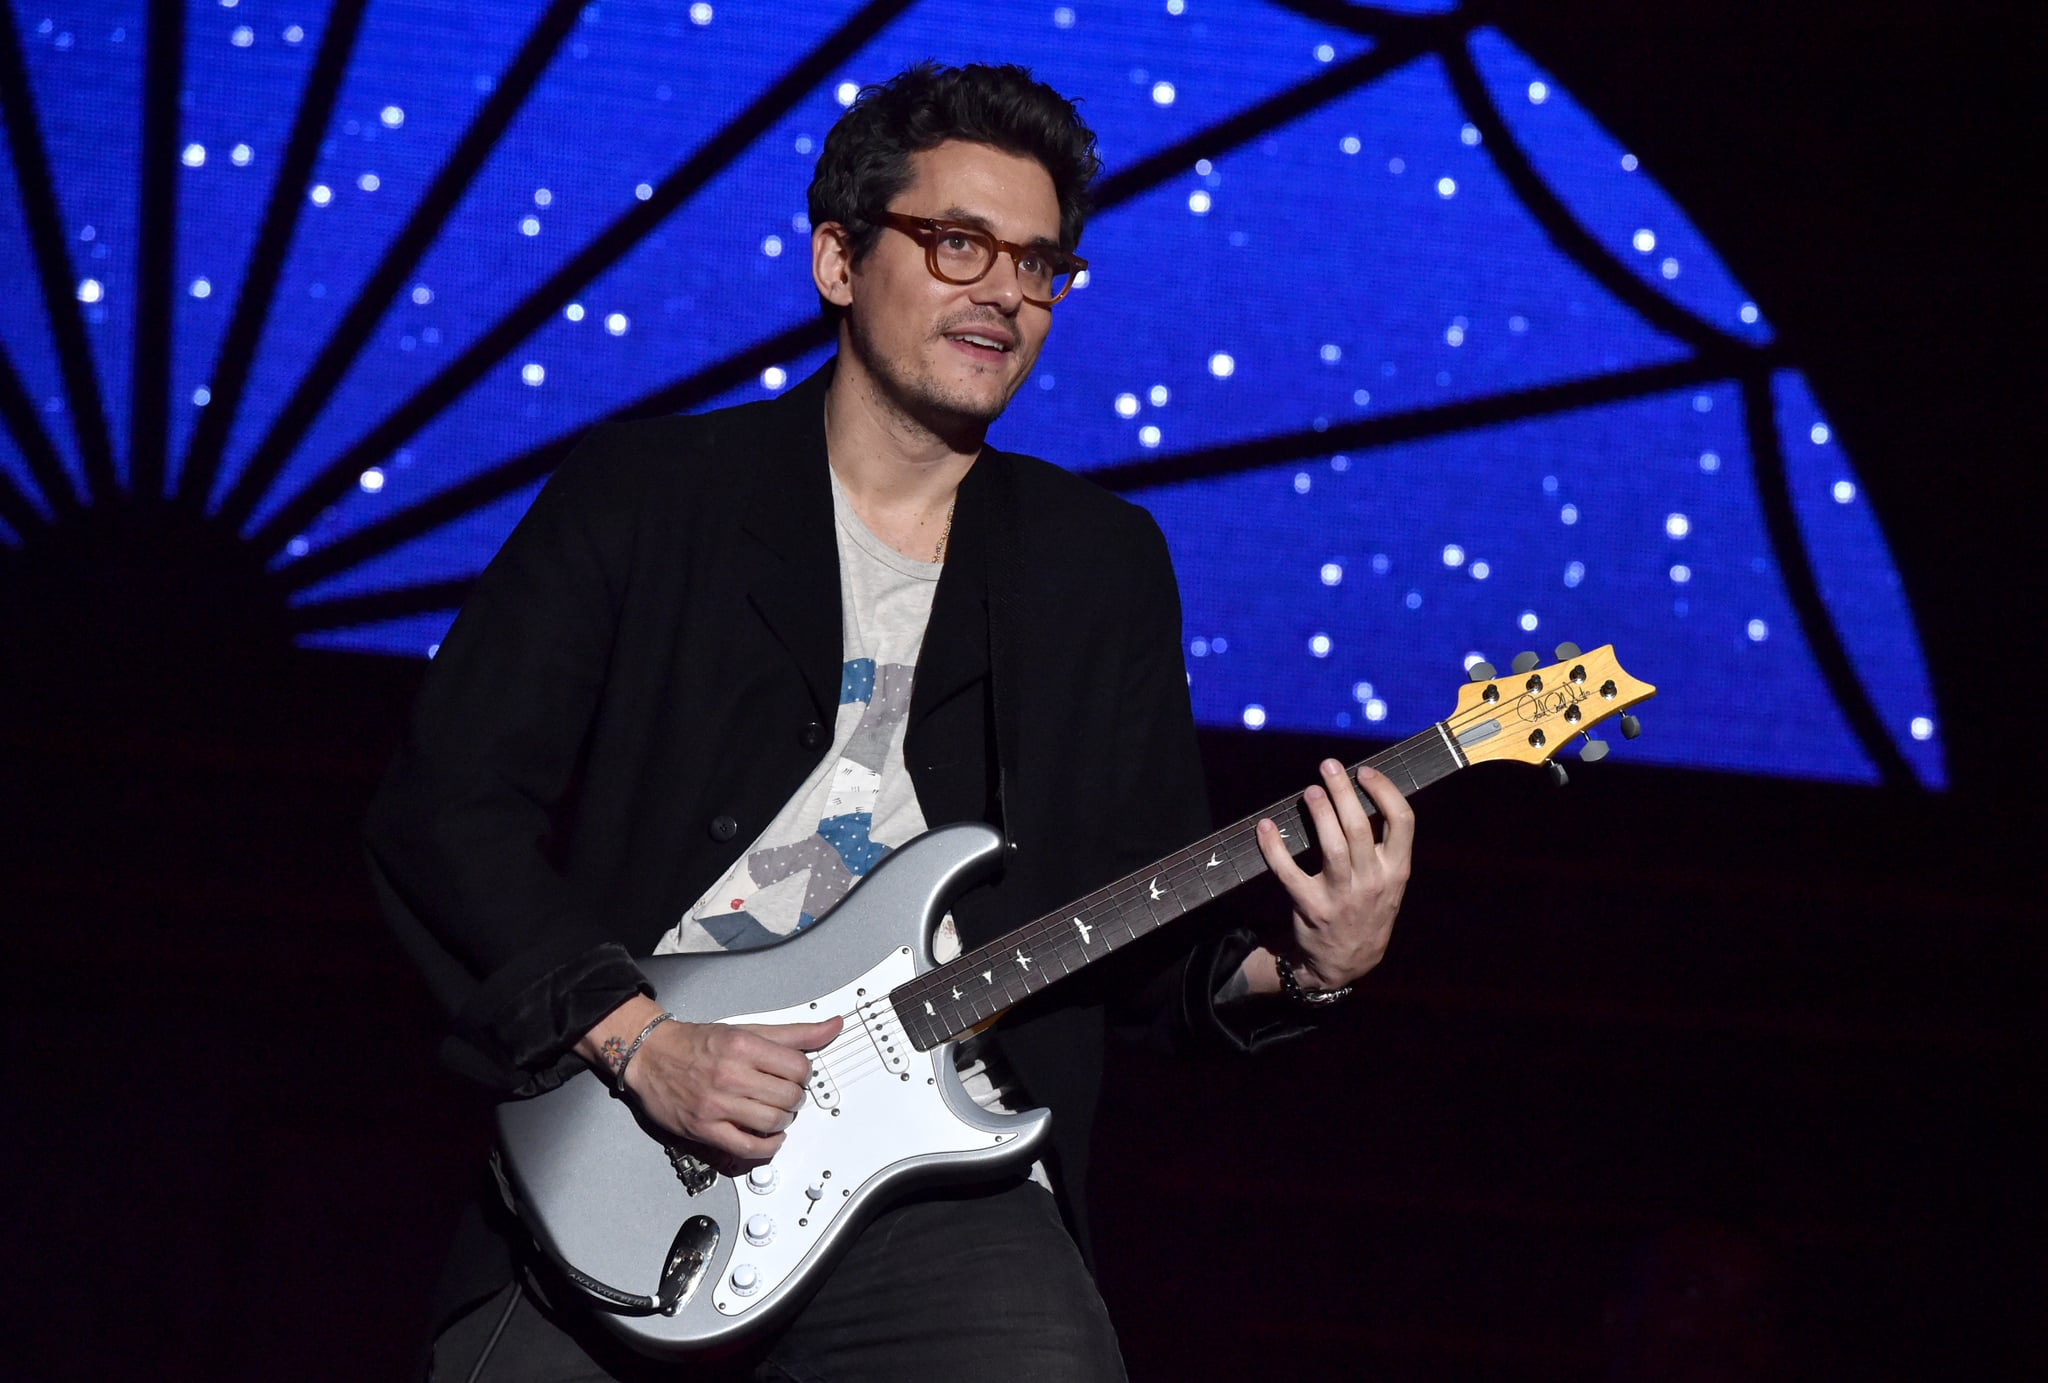 INGLEWOOD, CA - DECEMBER 31:  John Mayer performs onstage during Dave Chappelle and John Mayer: Controlled Danger at The Forum on December 31, 2017 in Inglewood, California.  (Photo by Lester Cohen/WireImage)